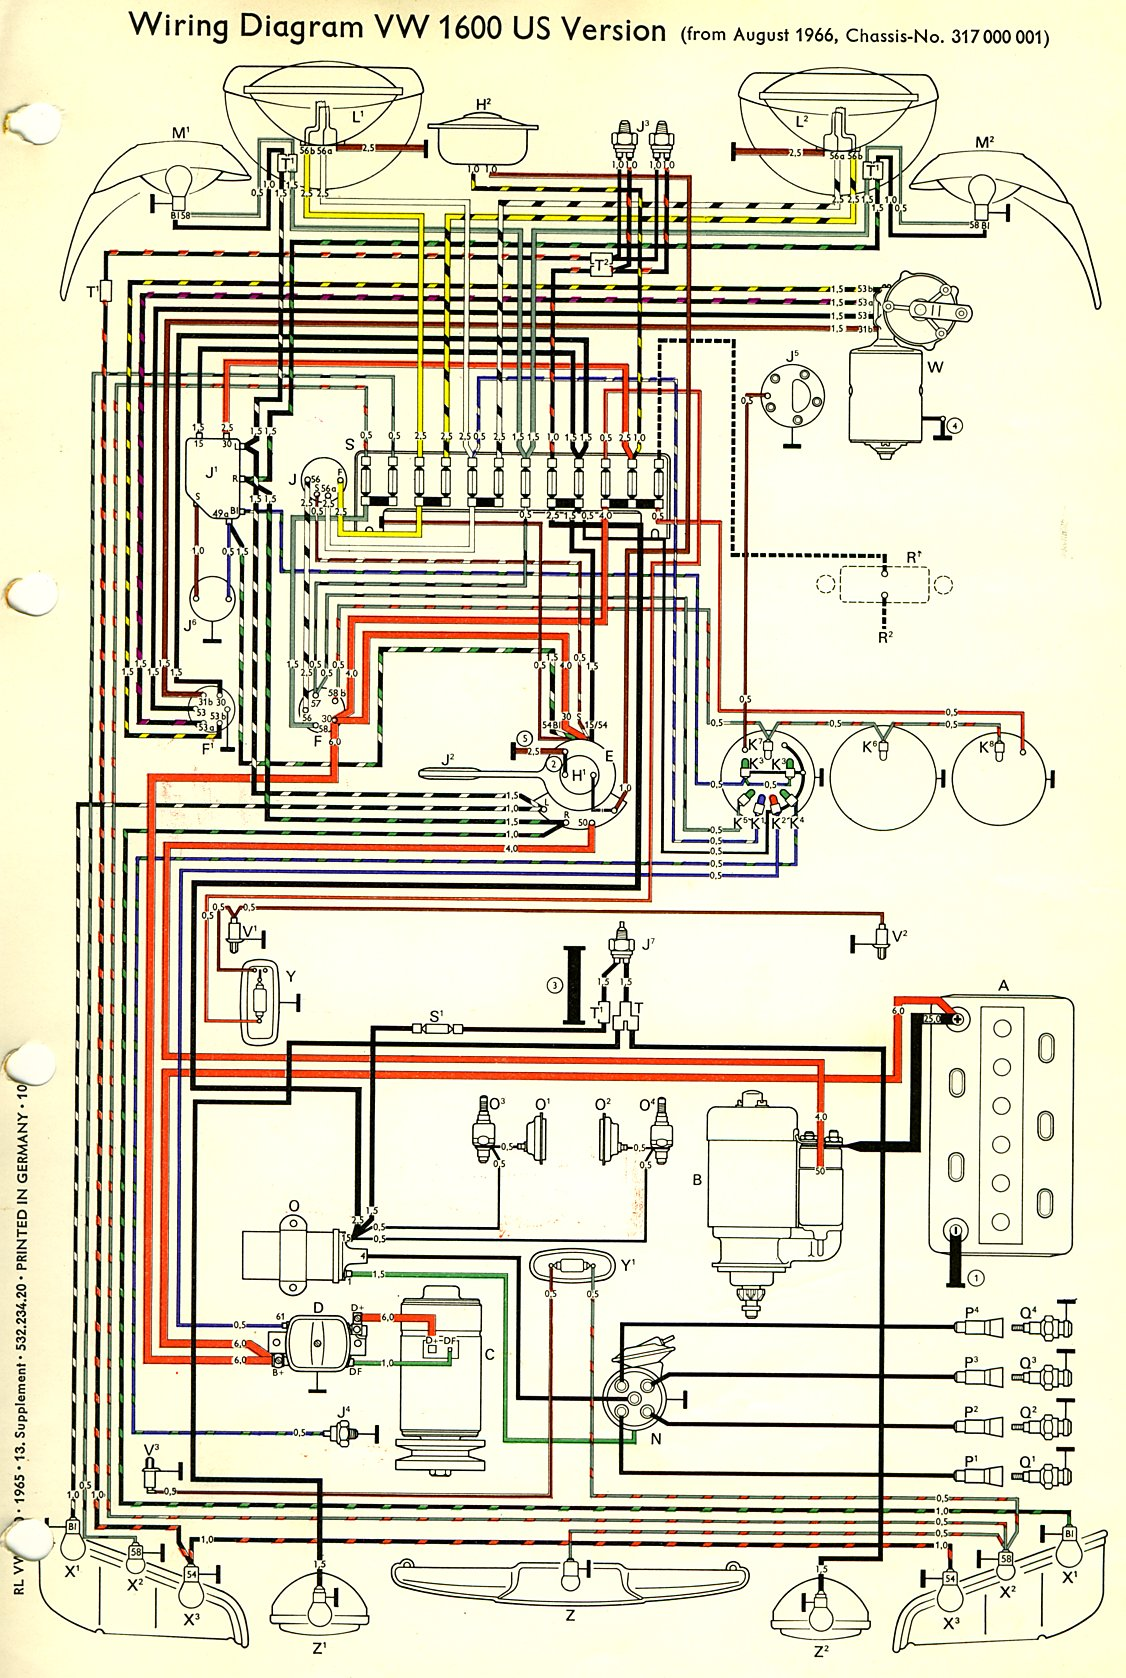 wiring harness rh vwispwest com vw type 3 fuel injection wiring diagram 1964 Type 3 Wiring Diagram